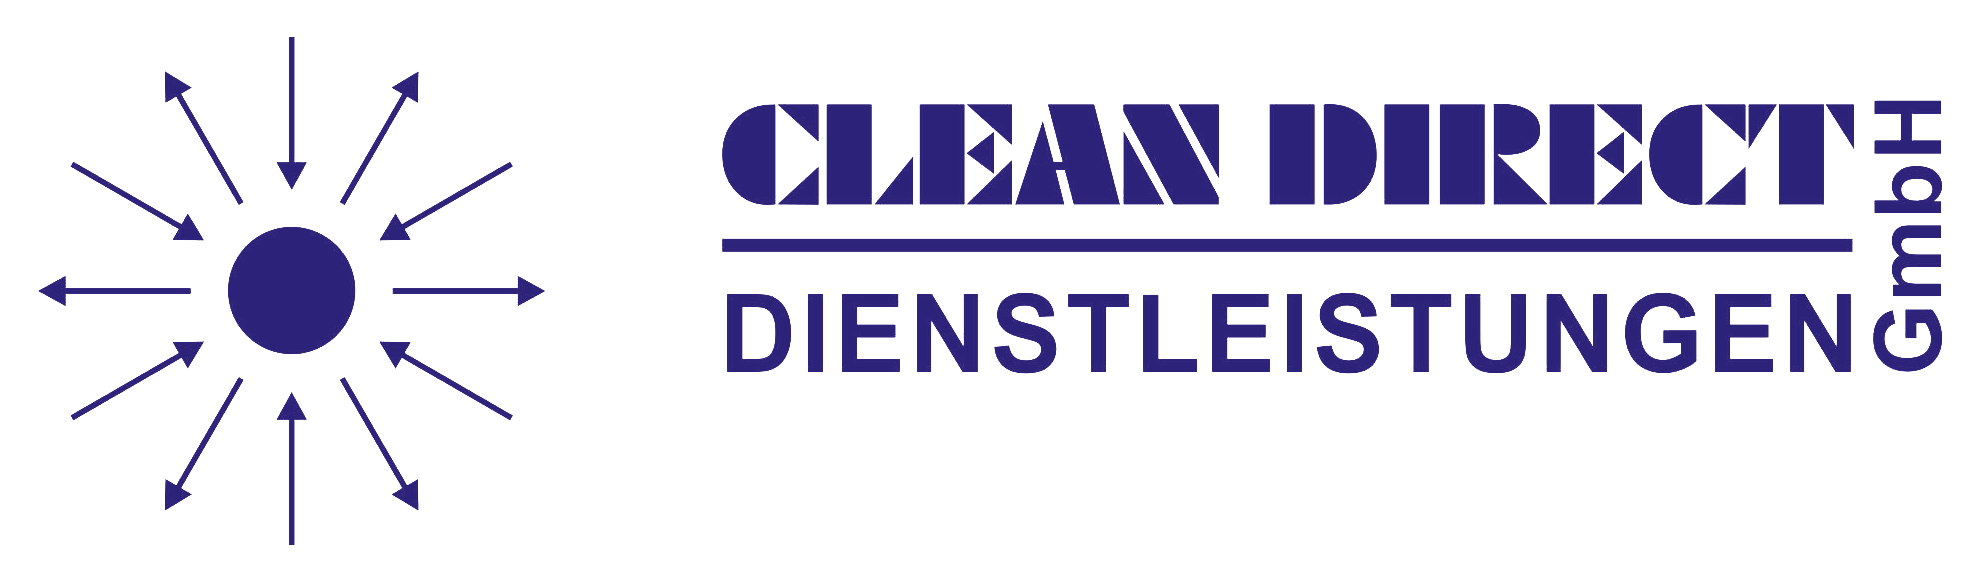 Cleandirect Logo